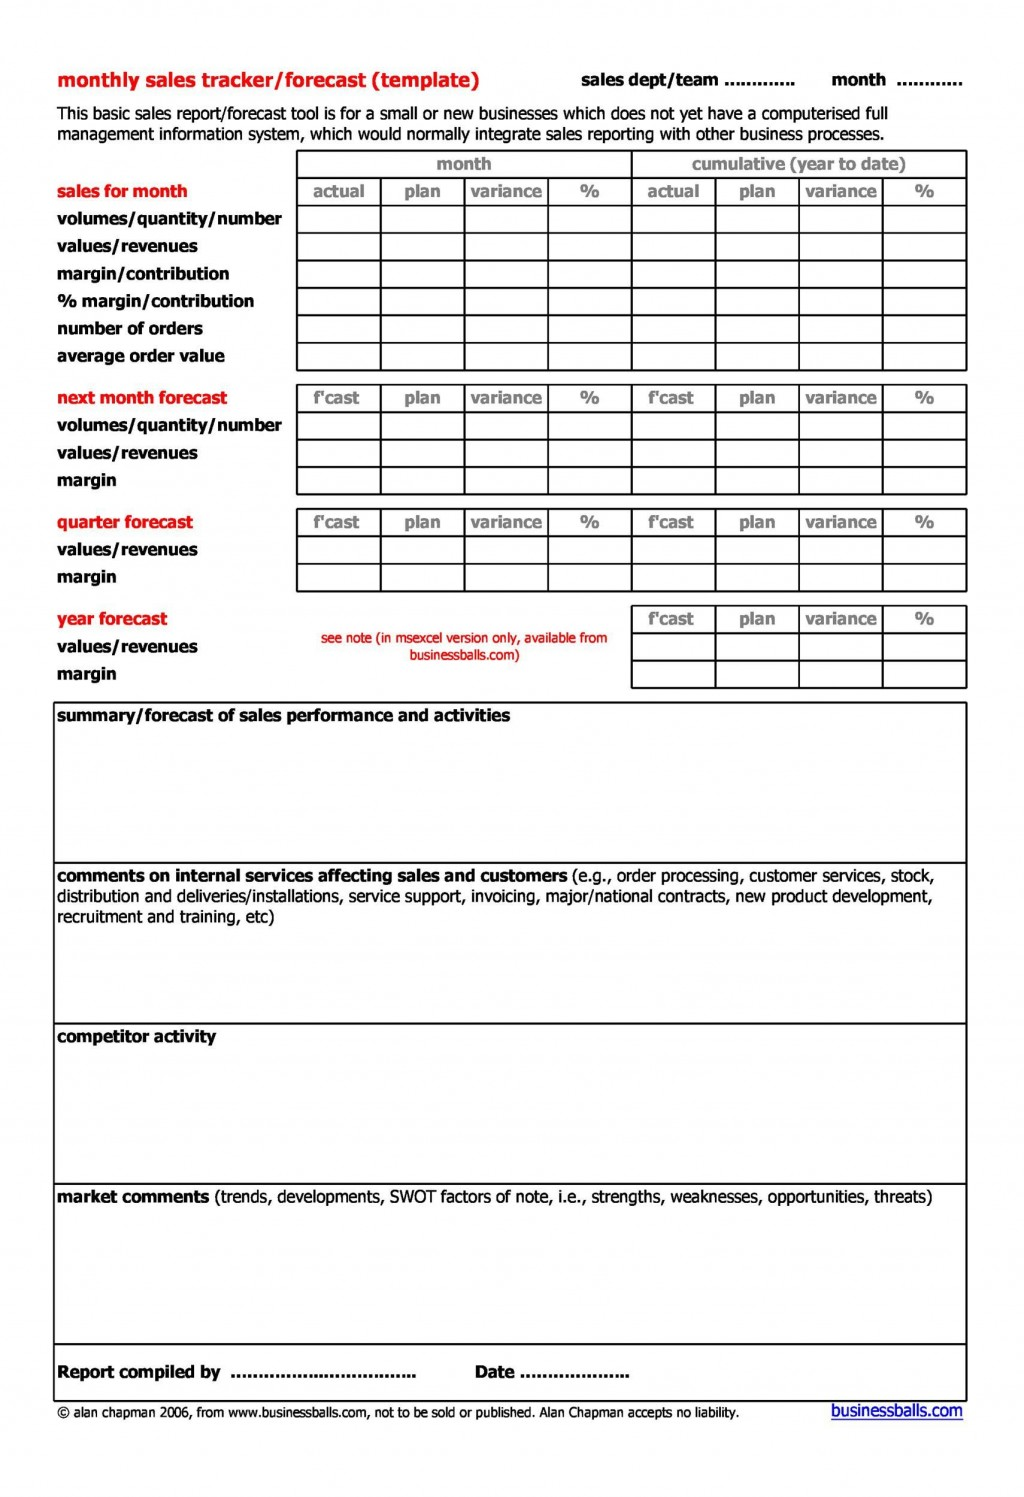 009 Archaicawful Sale Plan Template Word High Def  Compensation Free BusinesLarge